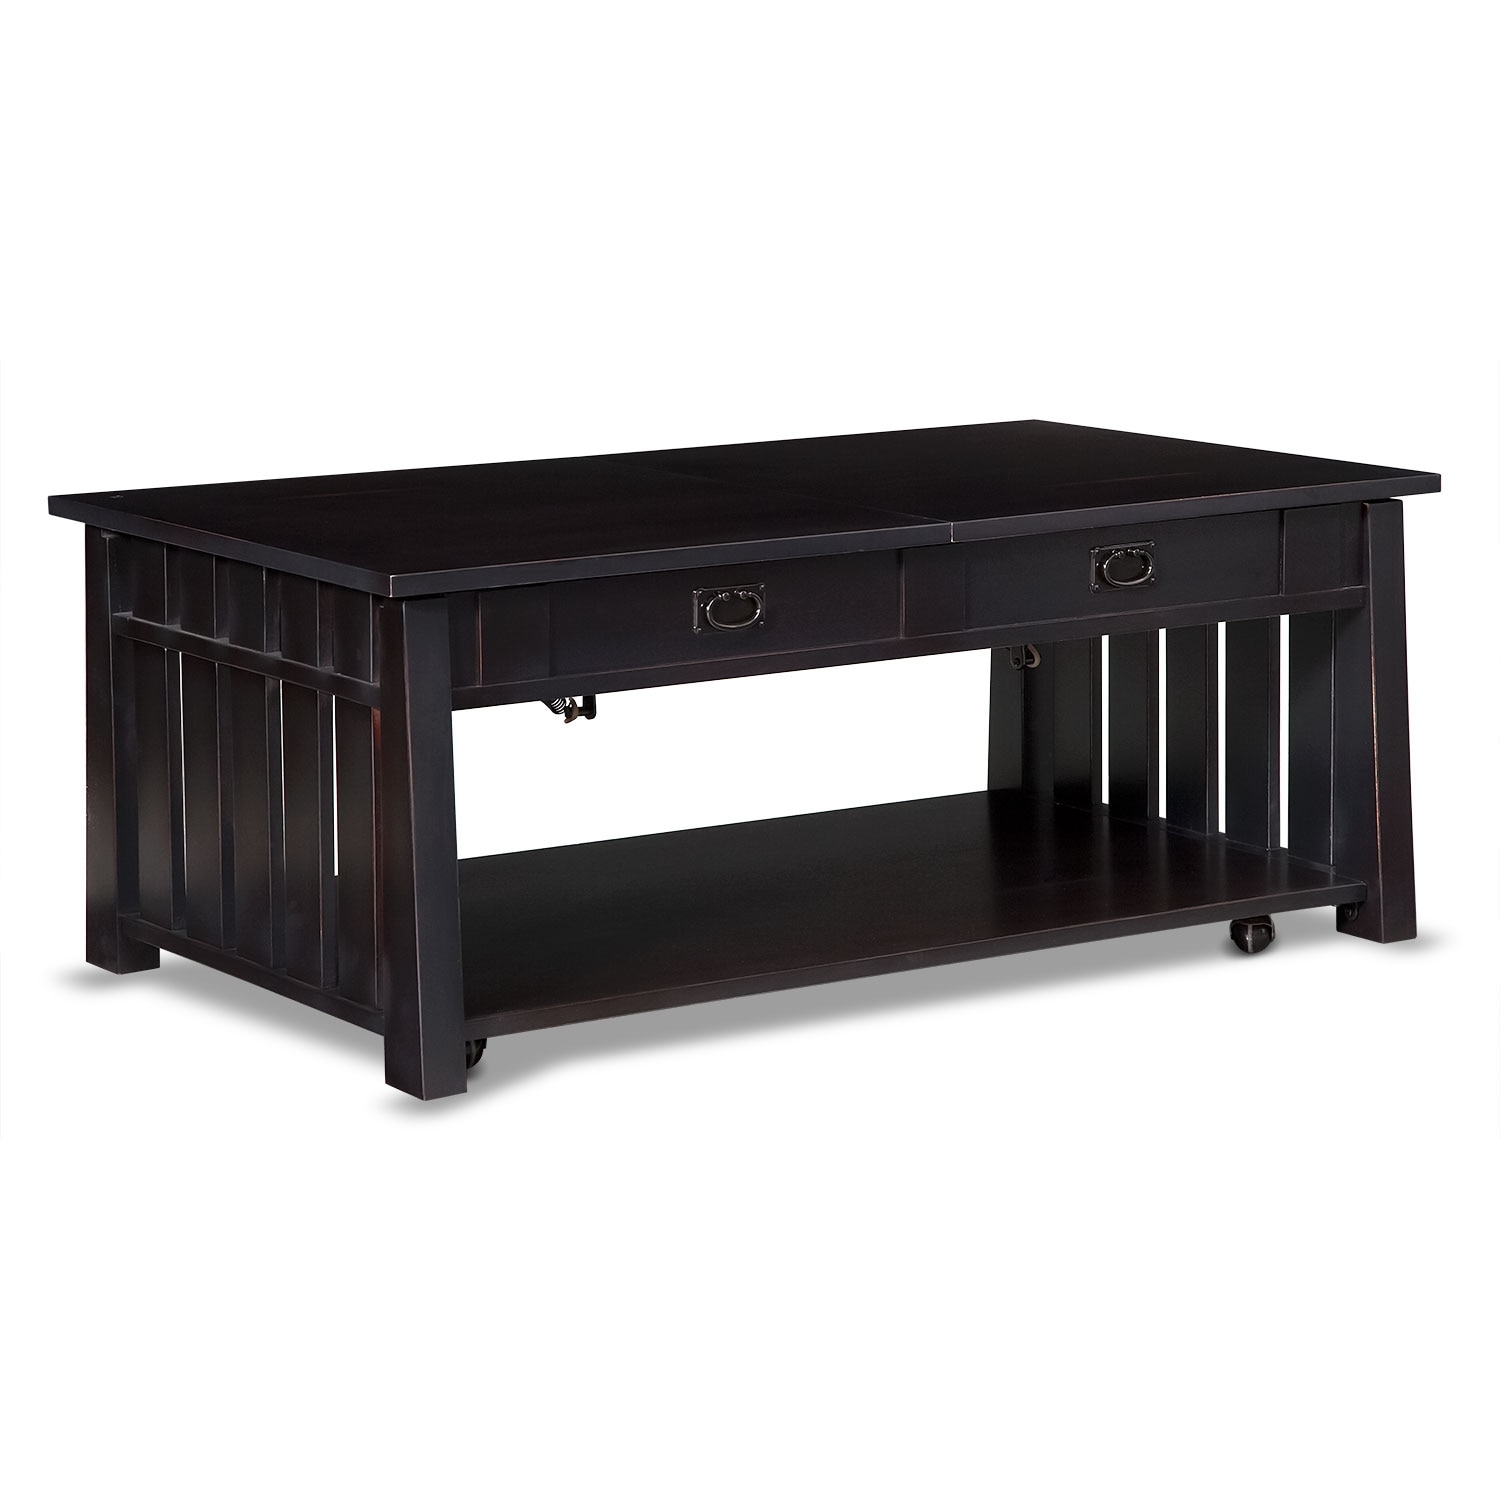 Tribute Lift Top Tail Table Black American Signature Furniture